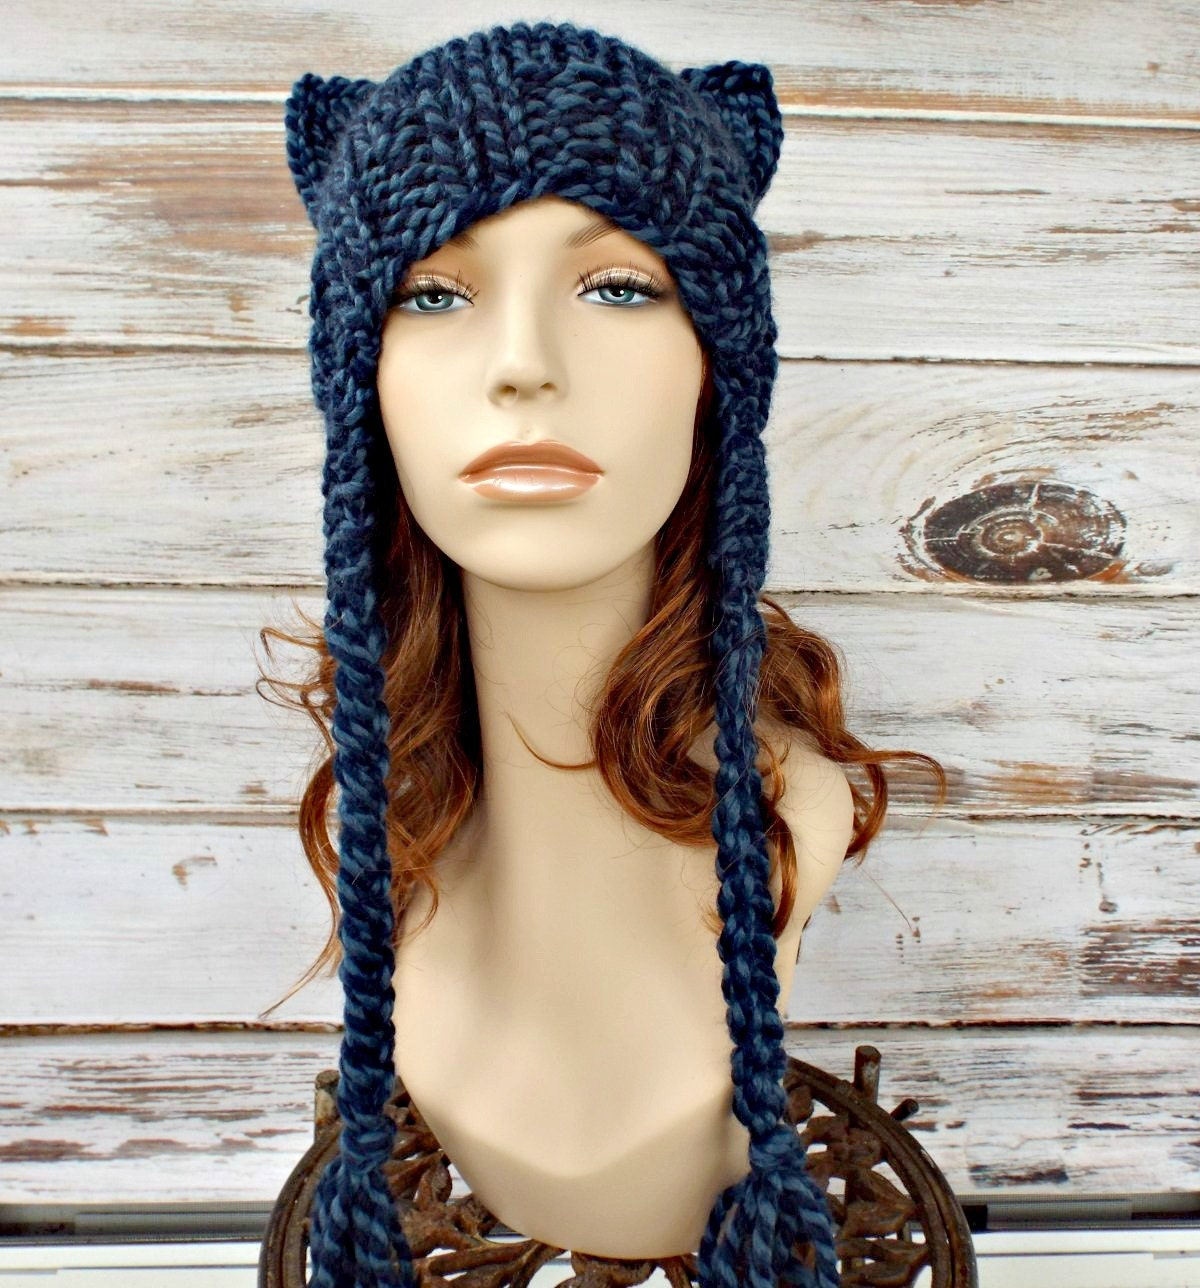 dae5cee03de Knit Hat Womens Hat - Braided Ties Ear Flap Cat Hat in Mixed Blue Knit Hat  - Blue Hat Blue Cat Hat Blue Beanie Womens Accessories Winter Hat